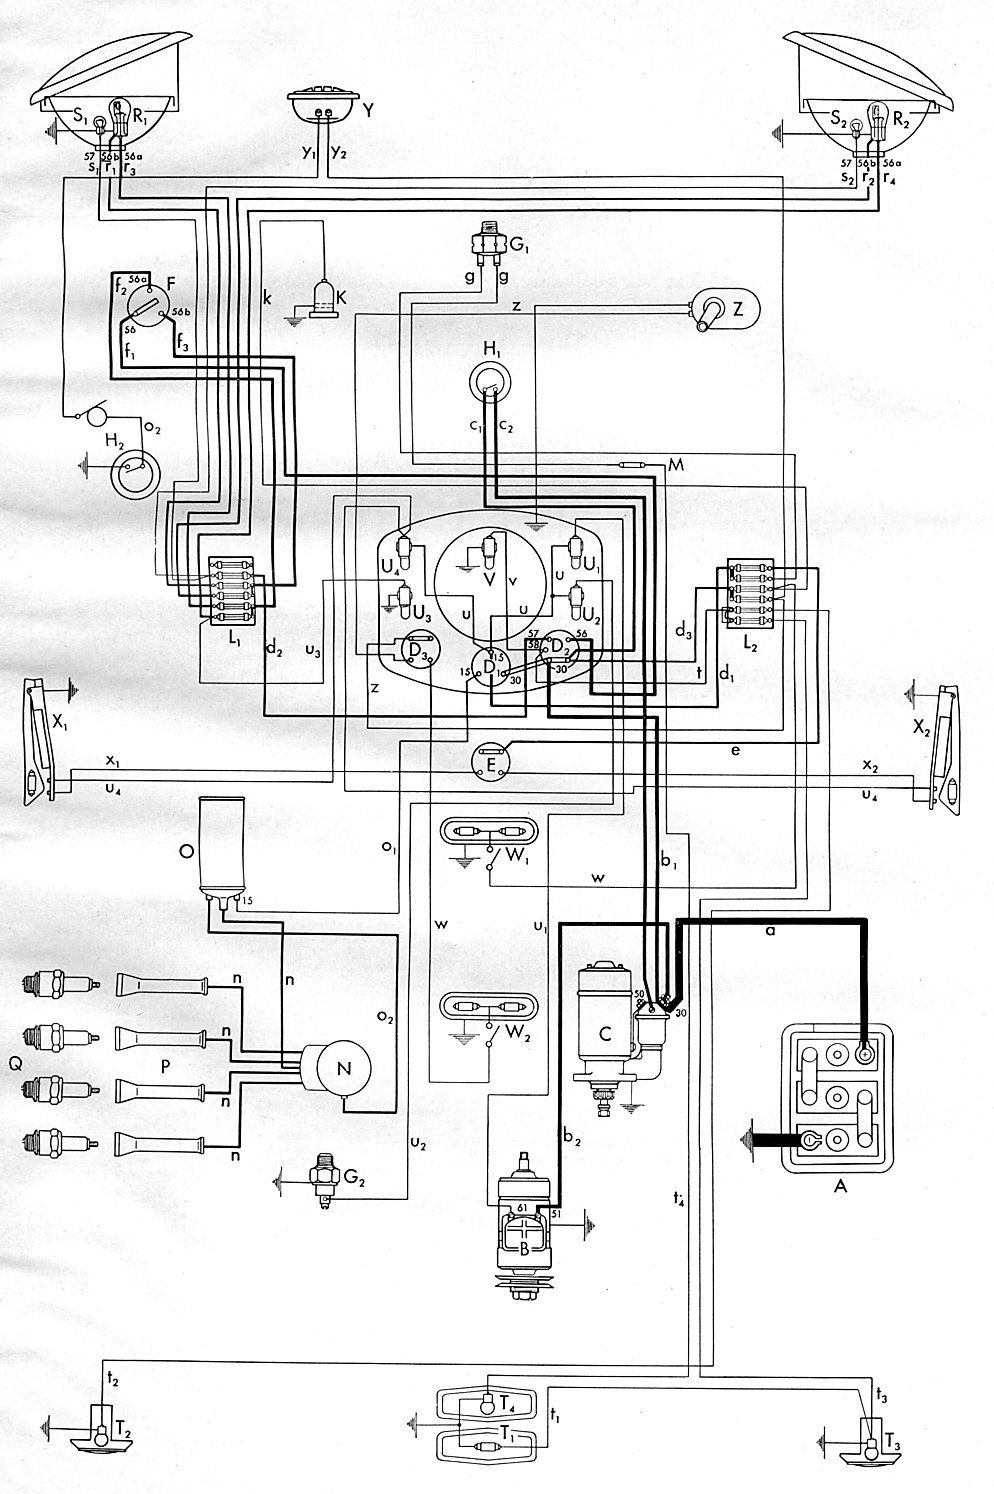 Type 2 Wiring Diagrams, thesamba type 1 wiring